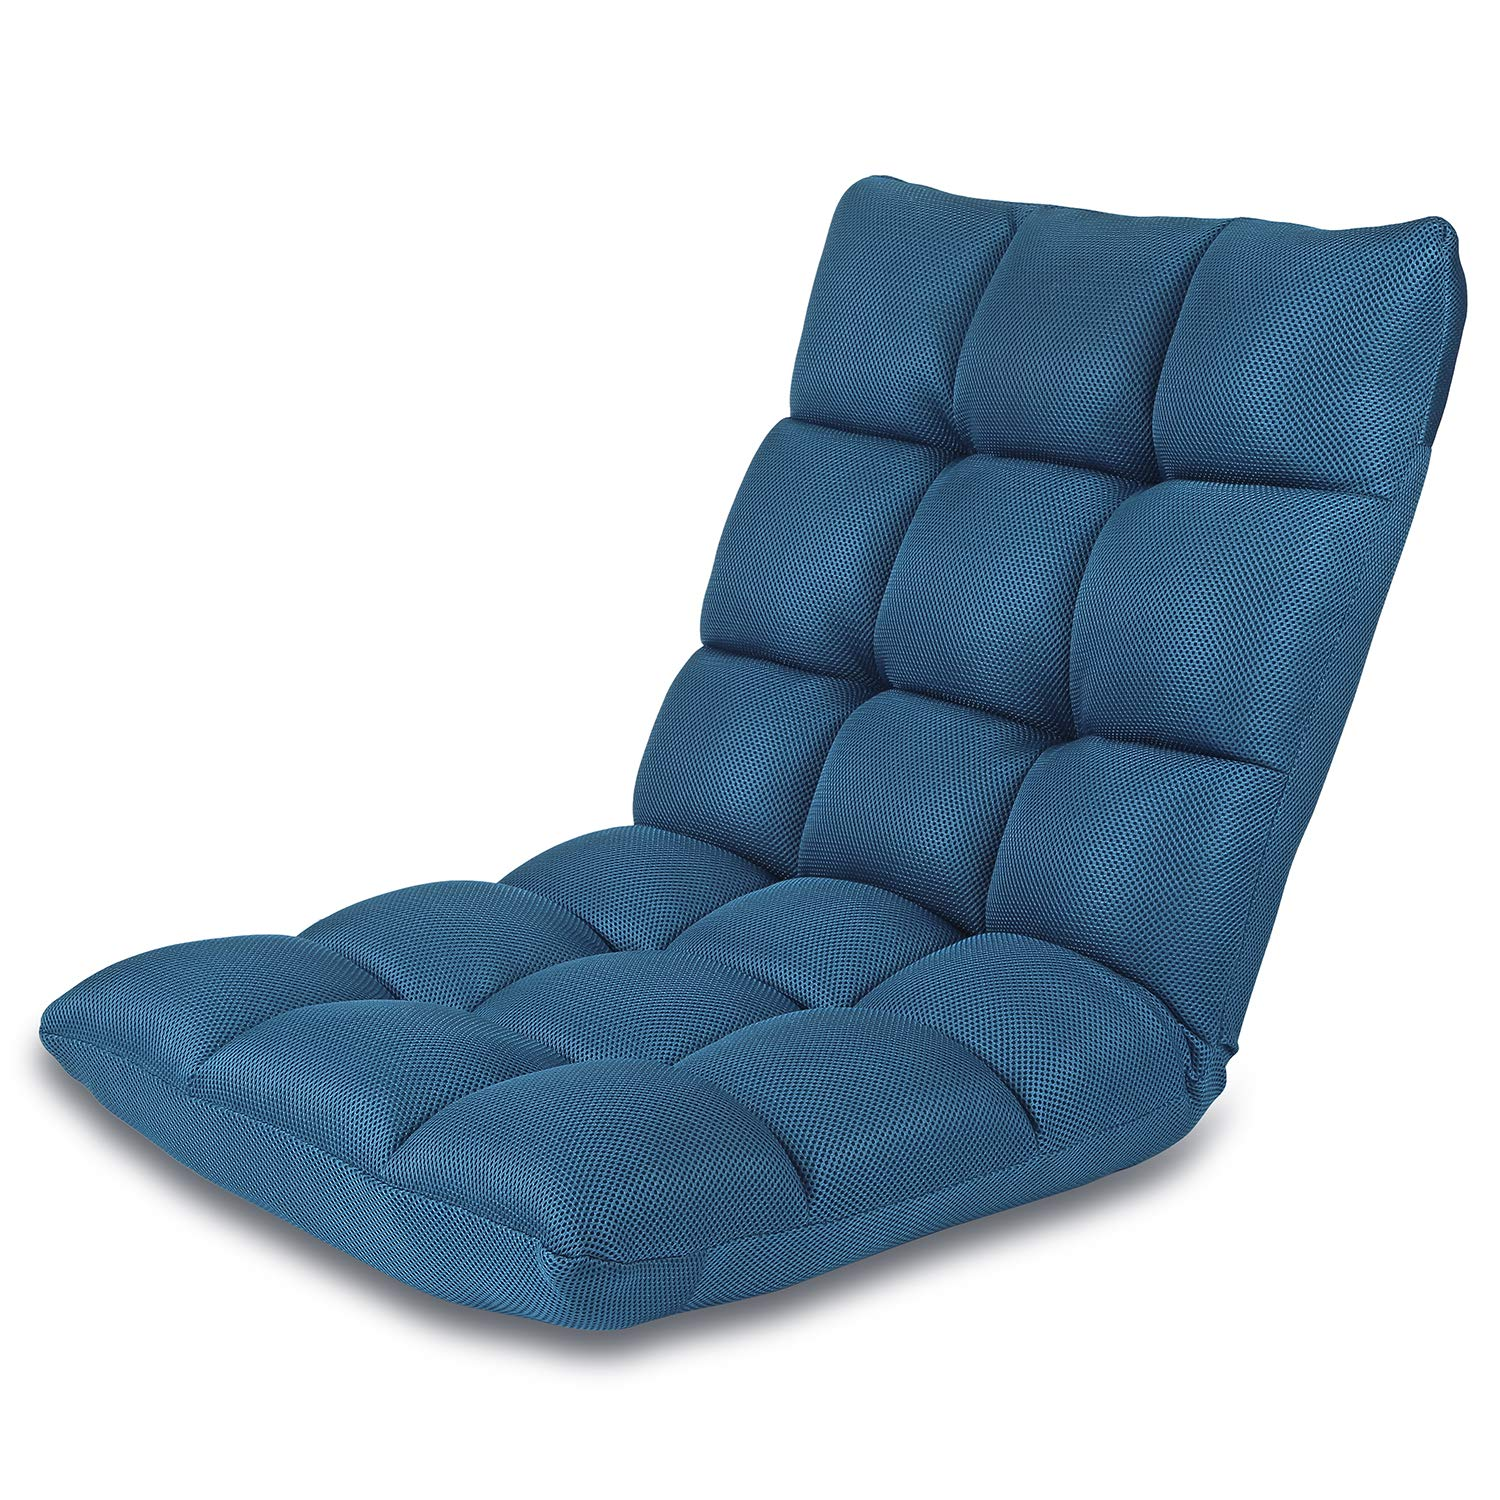 Floor Chair Adjustable NNEWVANTE 5 Angles Padded Floor Seating Back Support Floor Seat Recliner Fold Flat for Meditation, Reading, Watching, Video-Gaming, Adult Kid, Nave Blue by NNEWVANTE